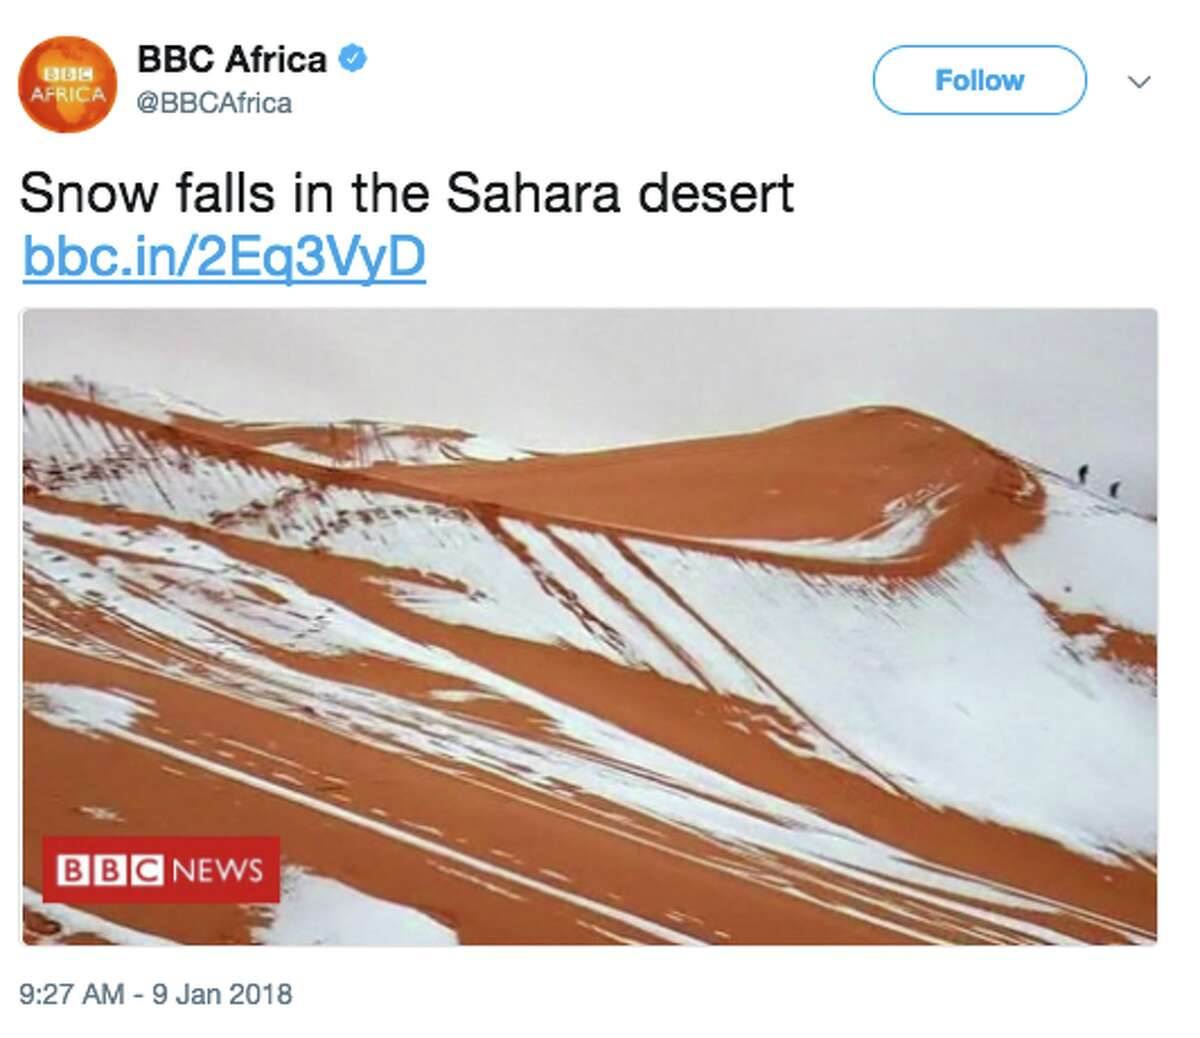 Snow fell in the hottest place in the world-the African Sahara.On Tuesday, Twitter was filled with images like this one on the BBC Africa's Twitter page showing a dusting of snow in the Sahara Desert. This is the fourth time the region has seen snow in the last 37 years.